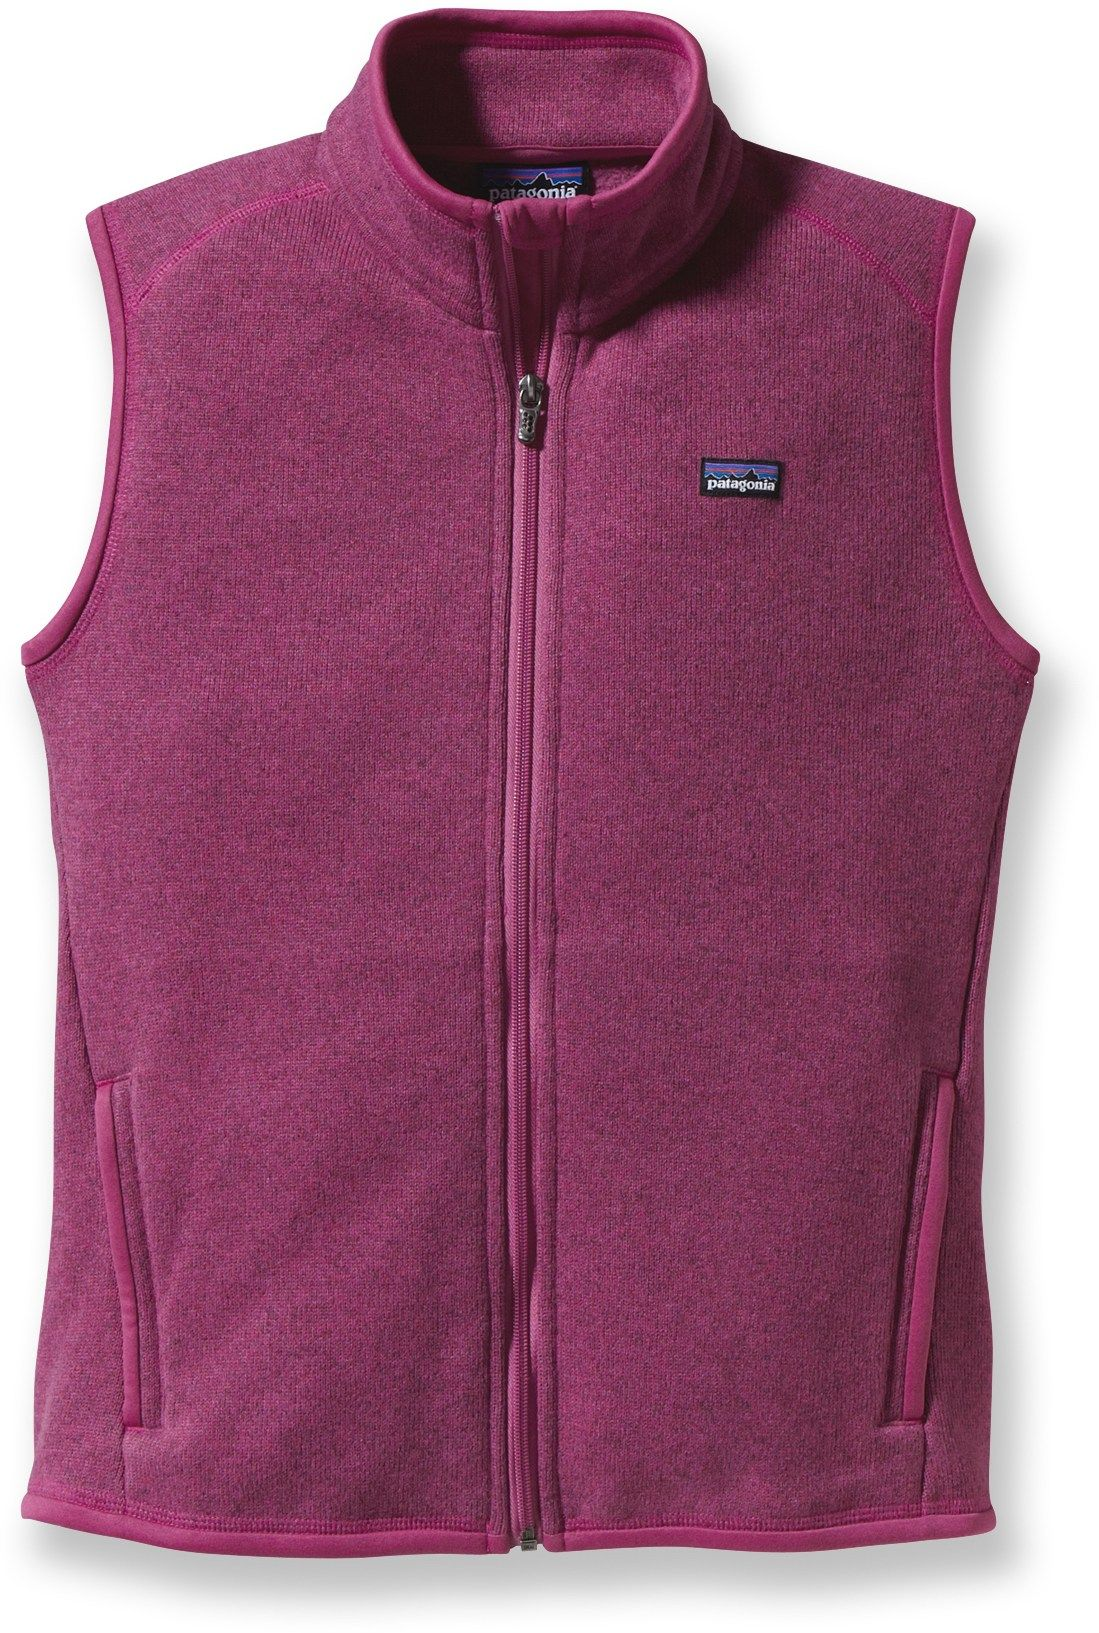 Patagonia Better Sweater Vest Womens Rei Co Op